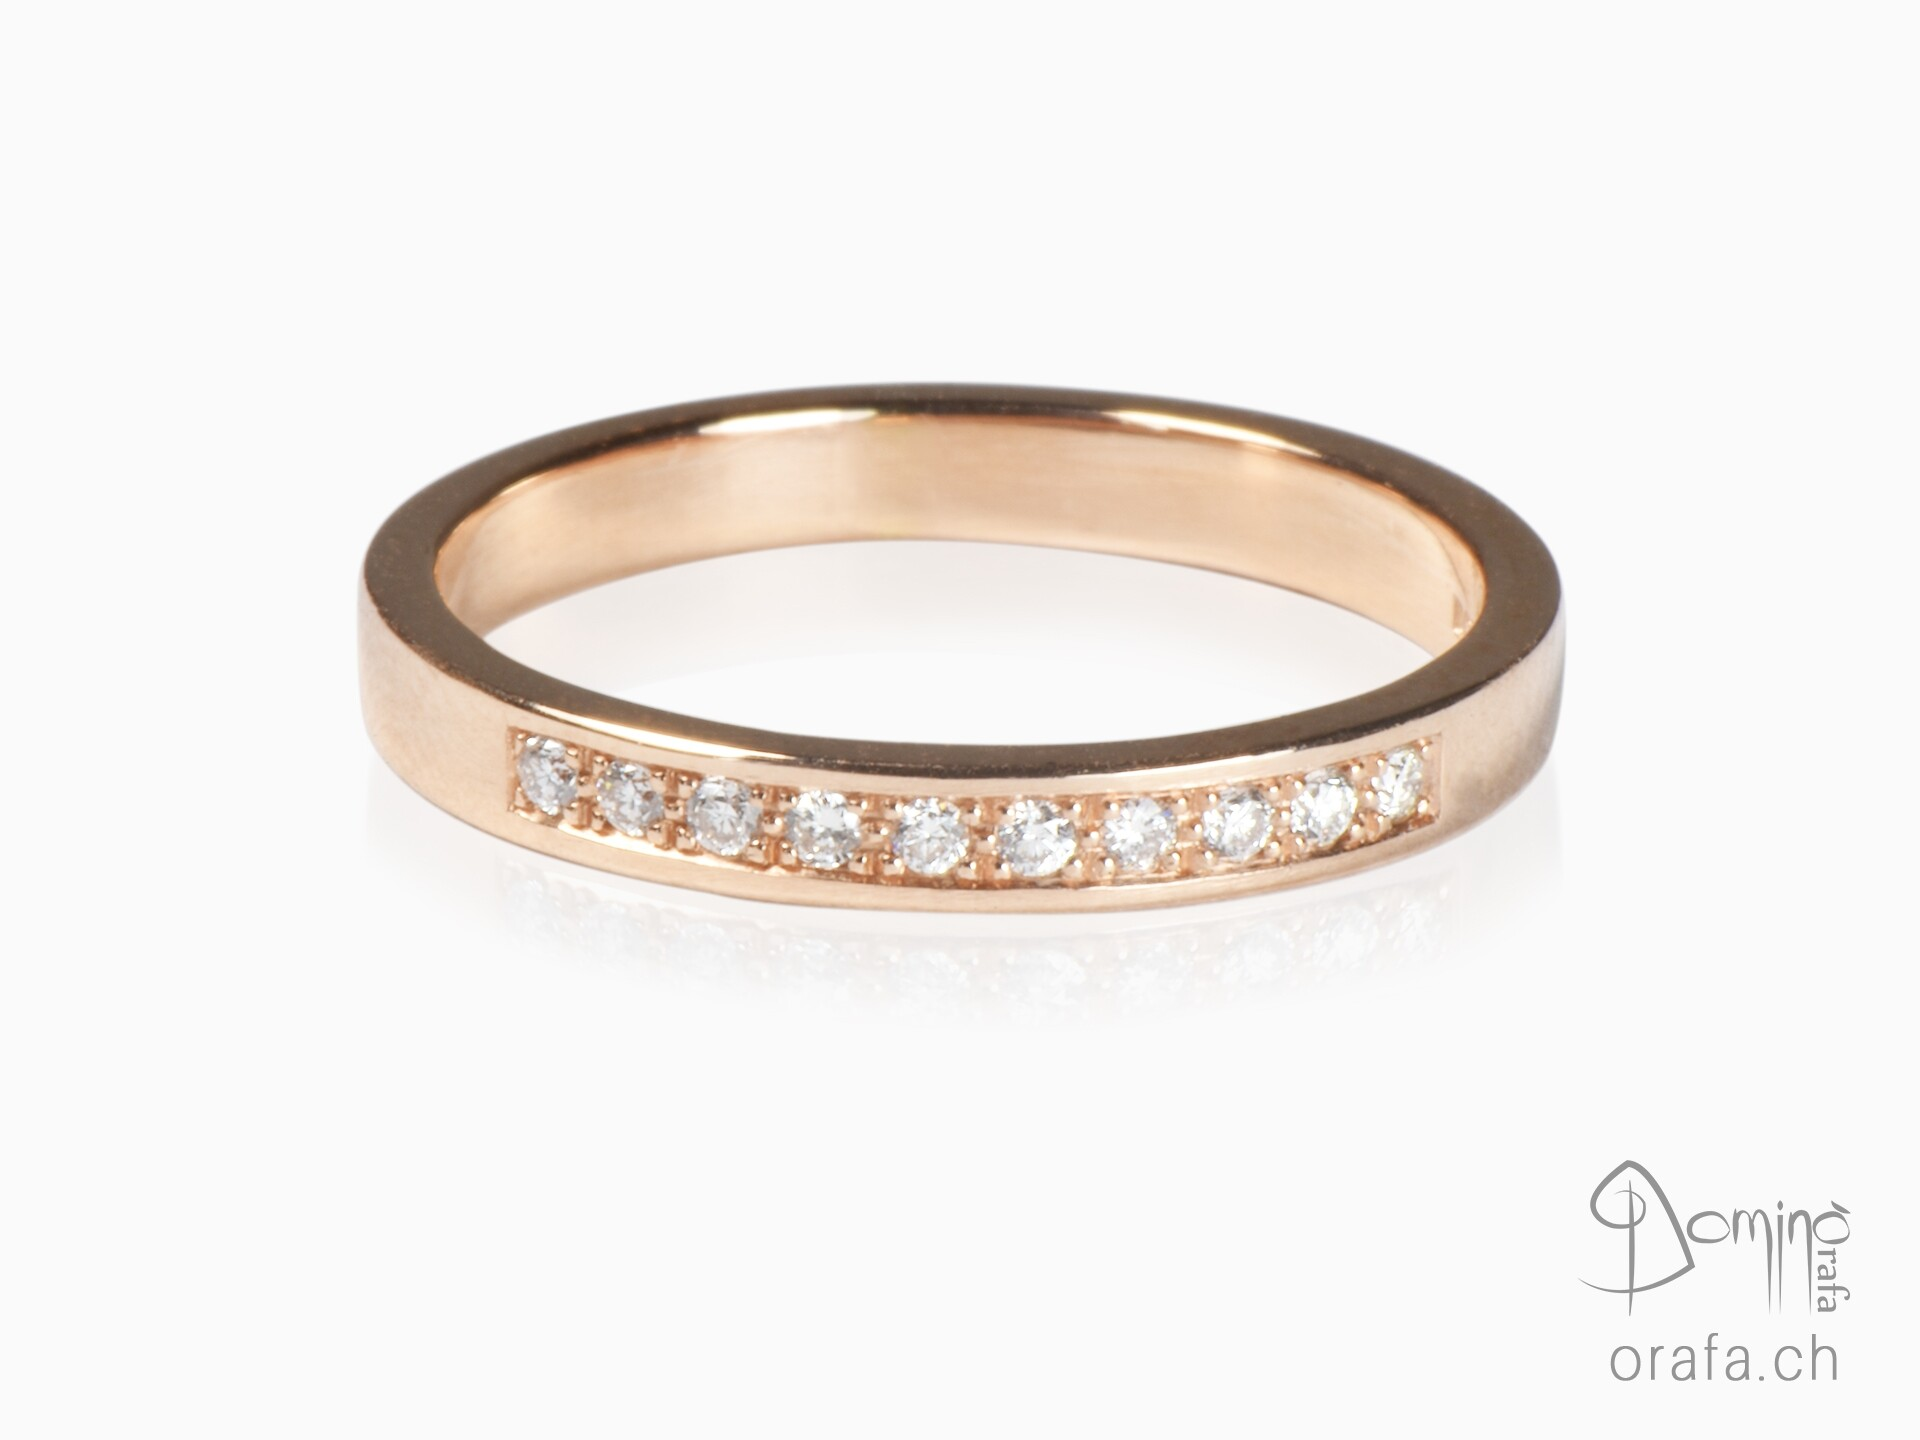 Red gold ring with 10 diamonds